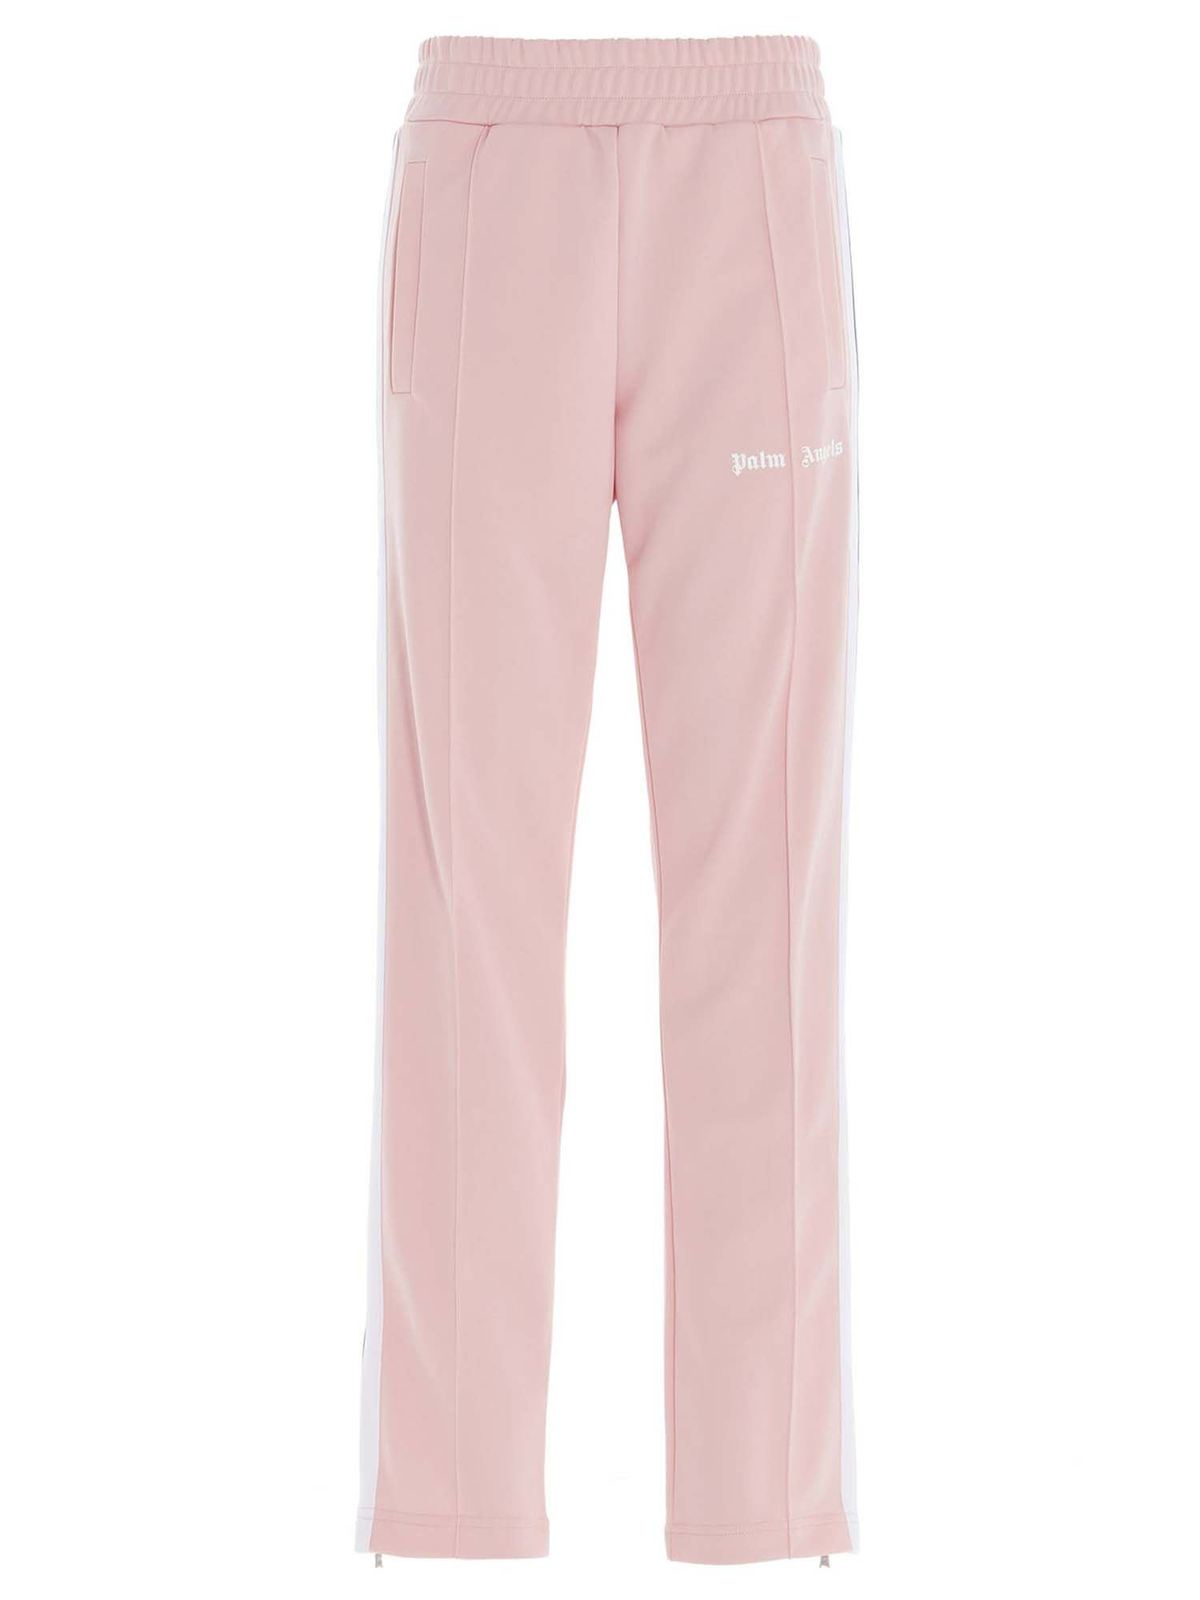 Palm Angels CLASSIC TRACK PANTS IN PINK